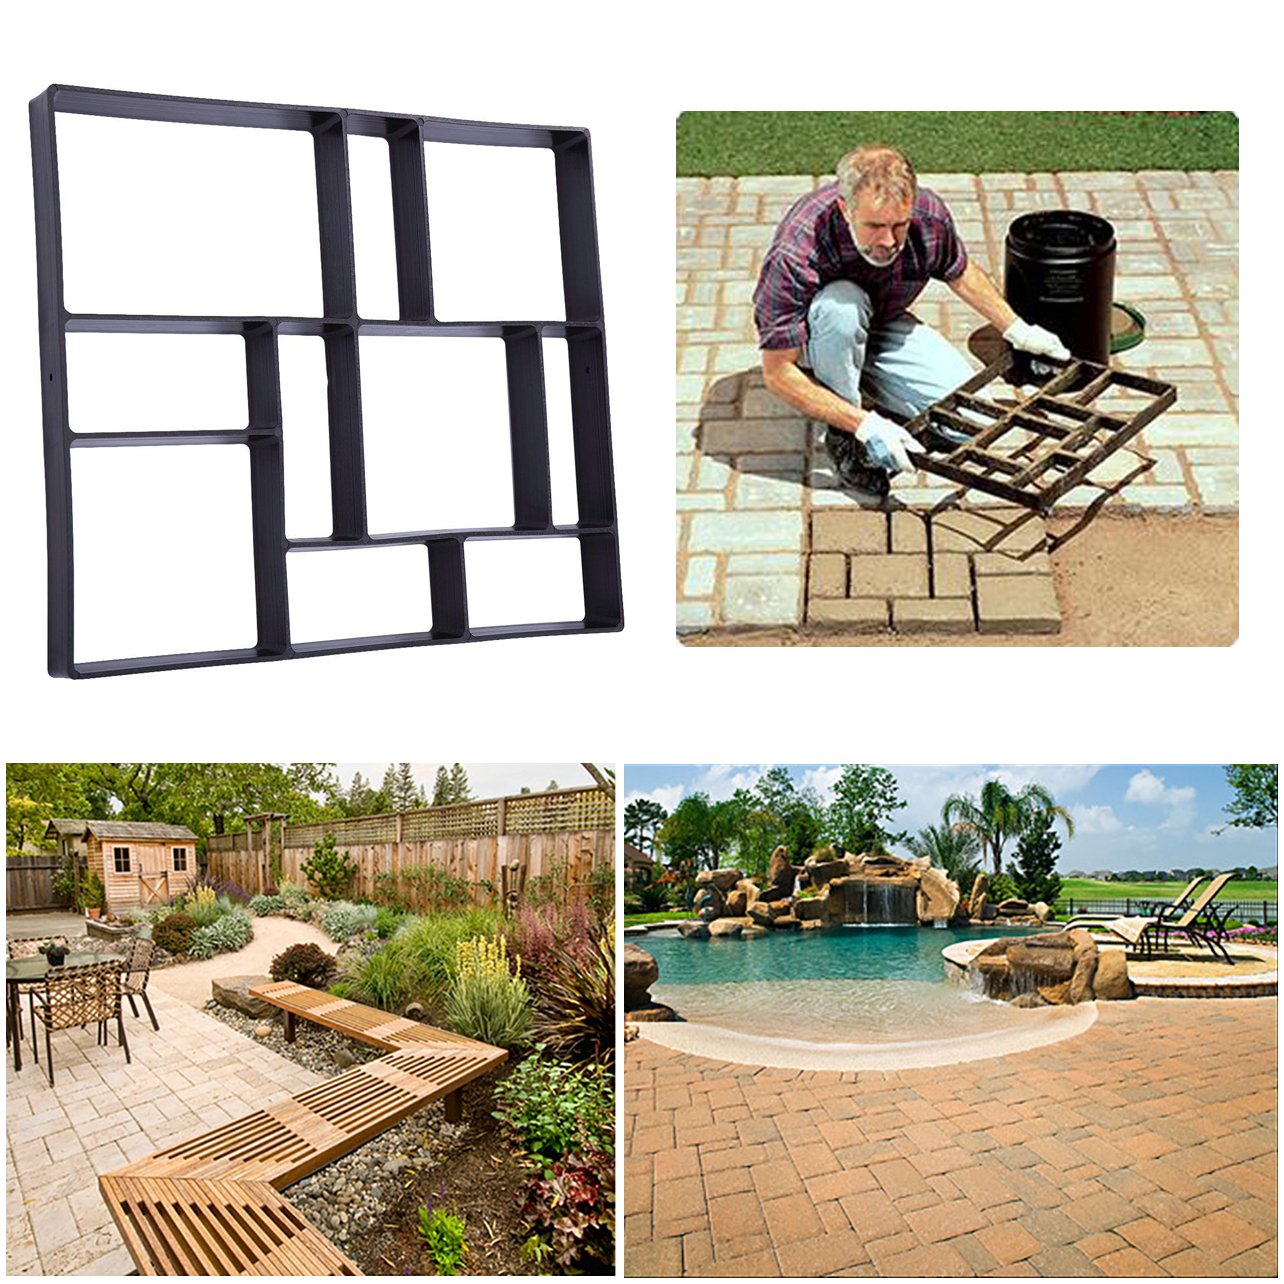 Rectangle DIY Pavement Mold Walk Maker Path Maker Brick Mold Concrete Form Pathmate Stepping Stone Molds for Concrete Mould Reusable for Garden, Court Yards, Patios and Walks, 23.6 x 19.7inches, 3Pack Ginbel Direct